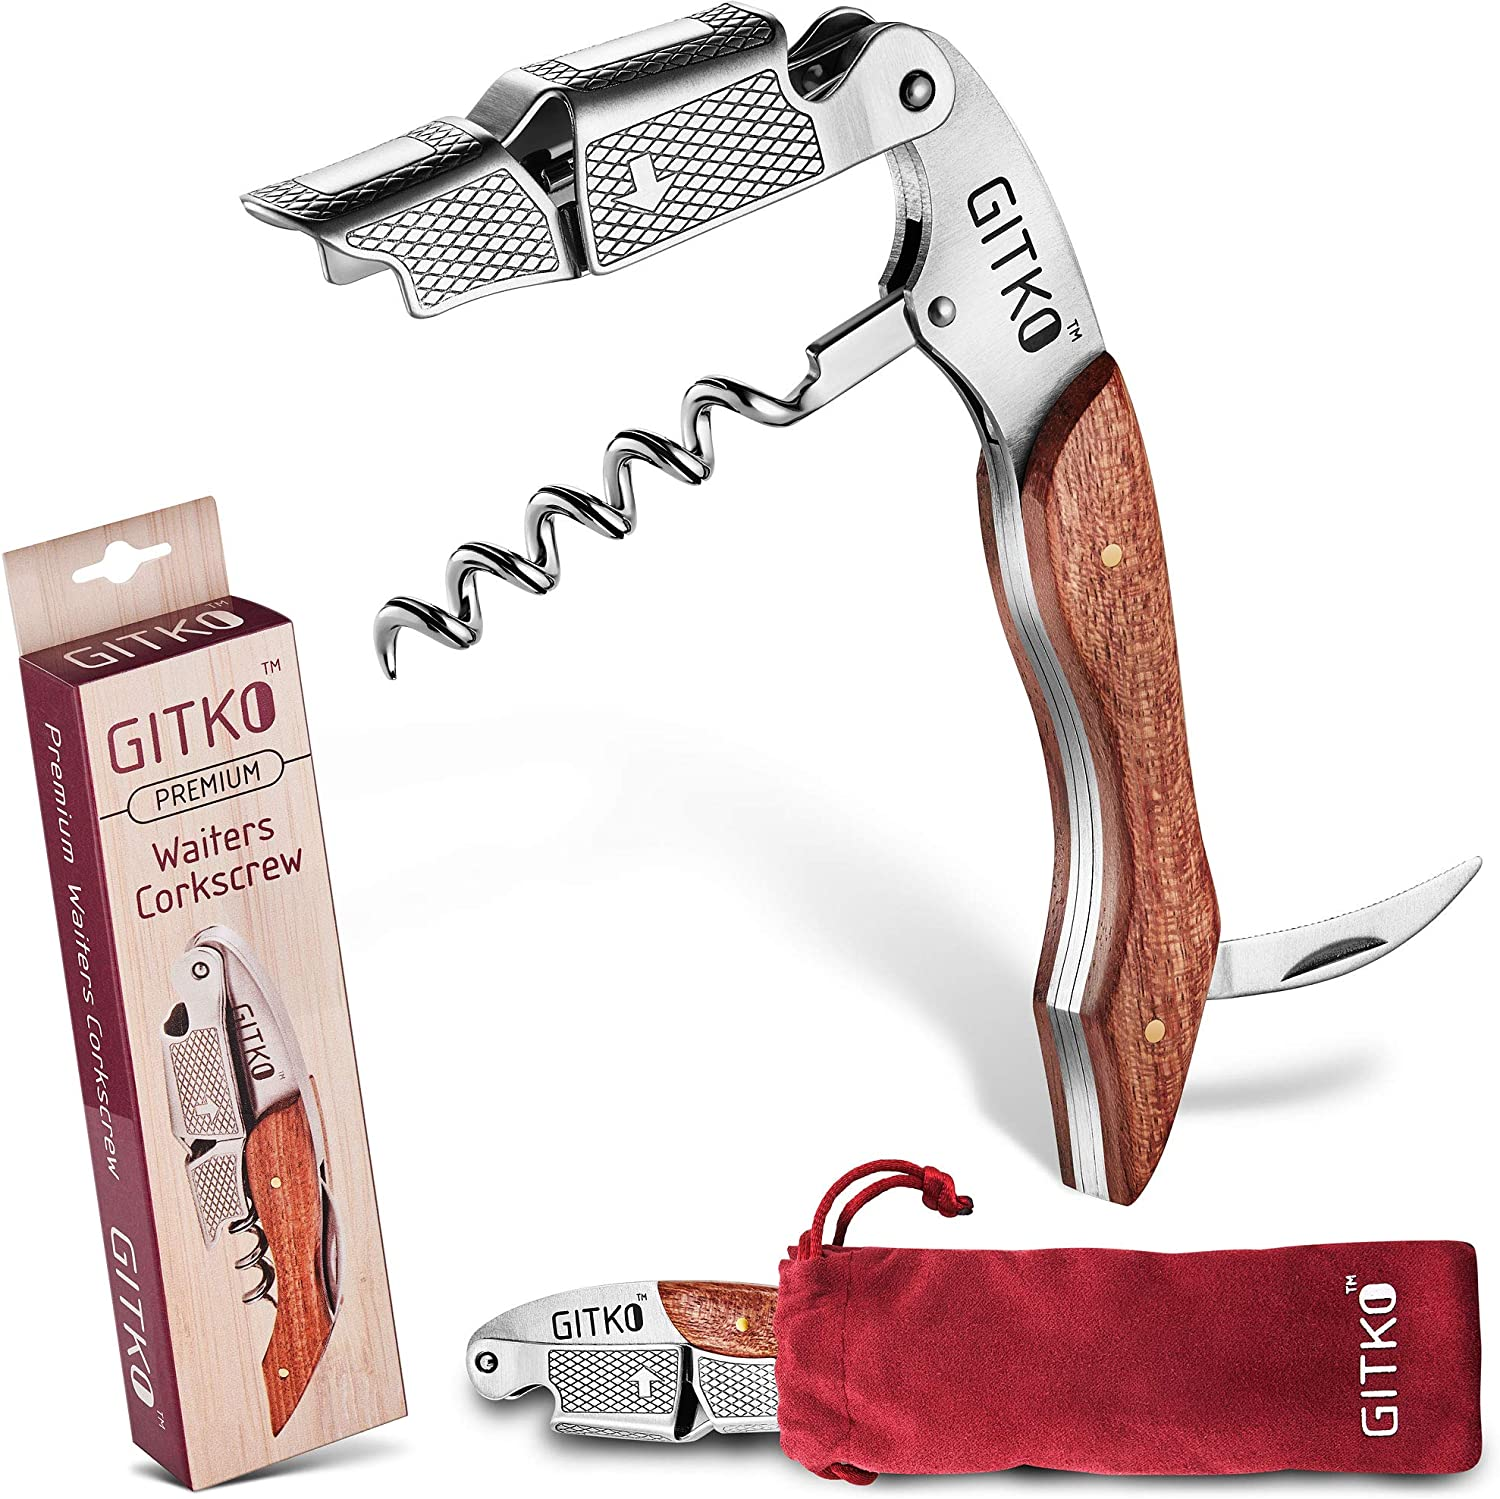 Burlywood Professional Waiters Corkscrew GoBetter Wine Opener with 2 Wine Foil Cutters Black /& Red Beer and Soda Bottle Opener Functional Gift for Wine Lovers